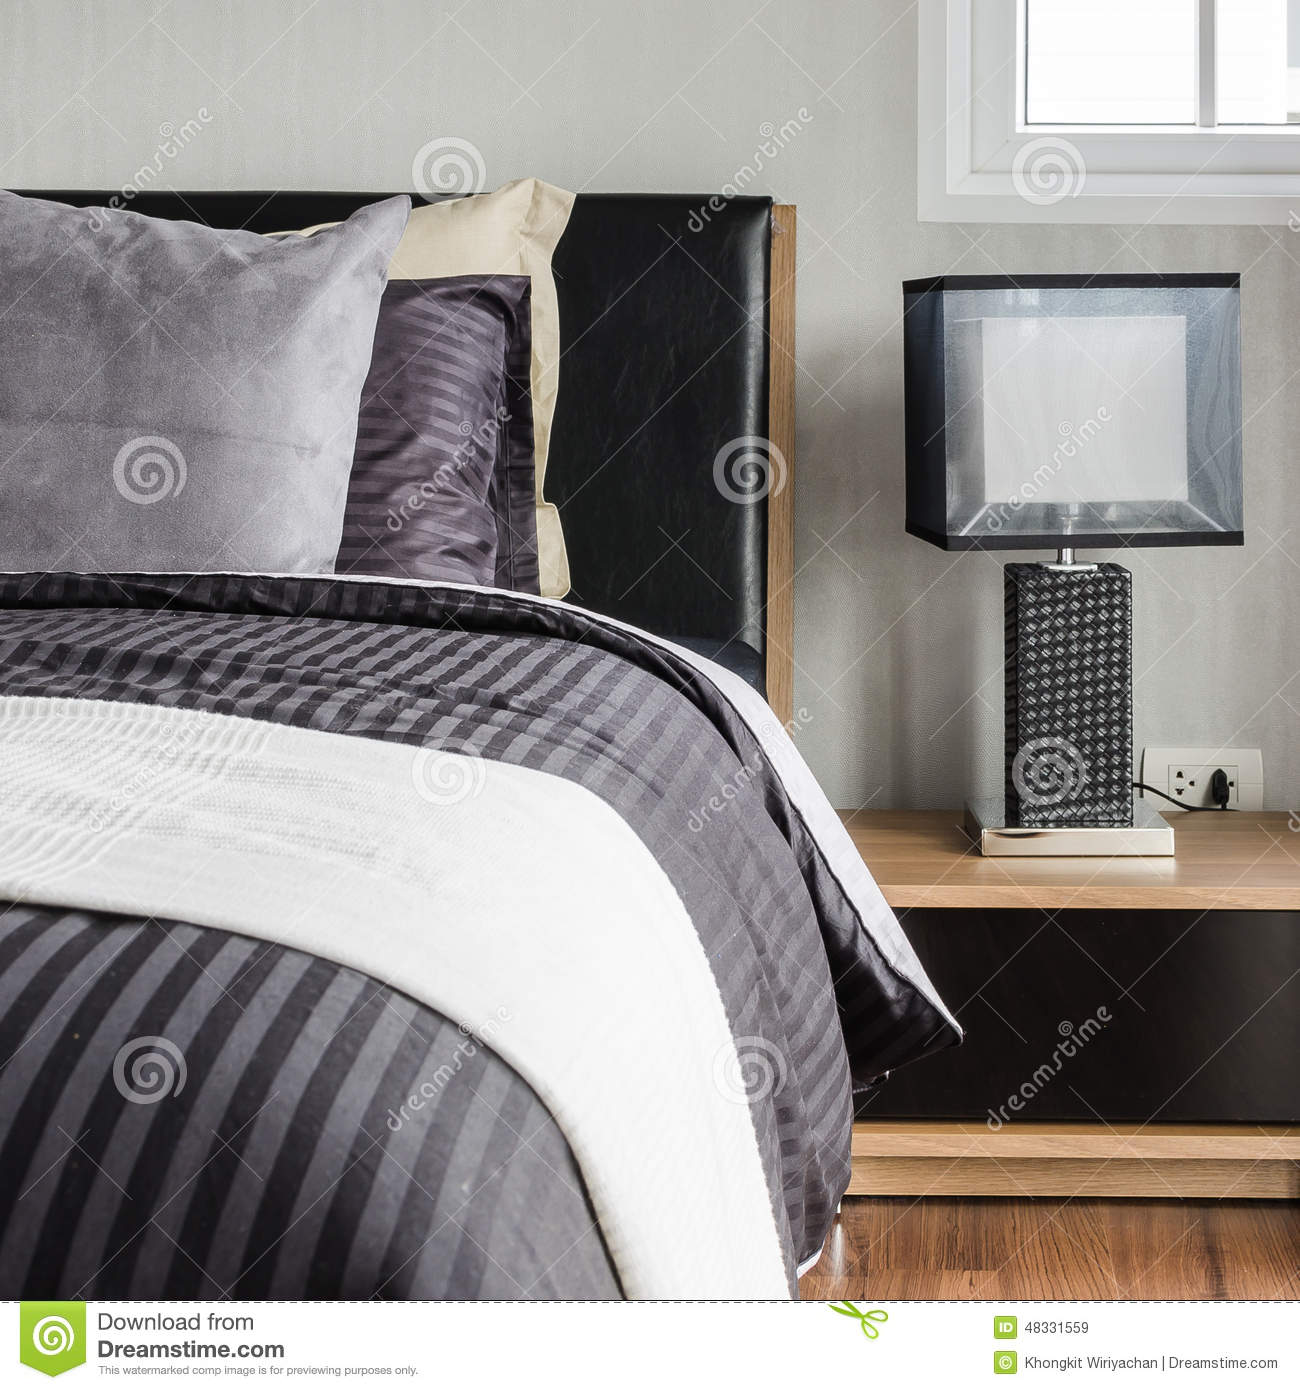 Modern Bedroom Pillows : Modern Grey Bedroom With Pillows On Bed Stock Photo - Image: 48331559